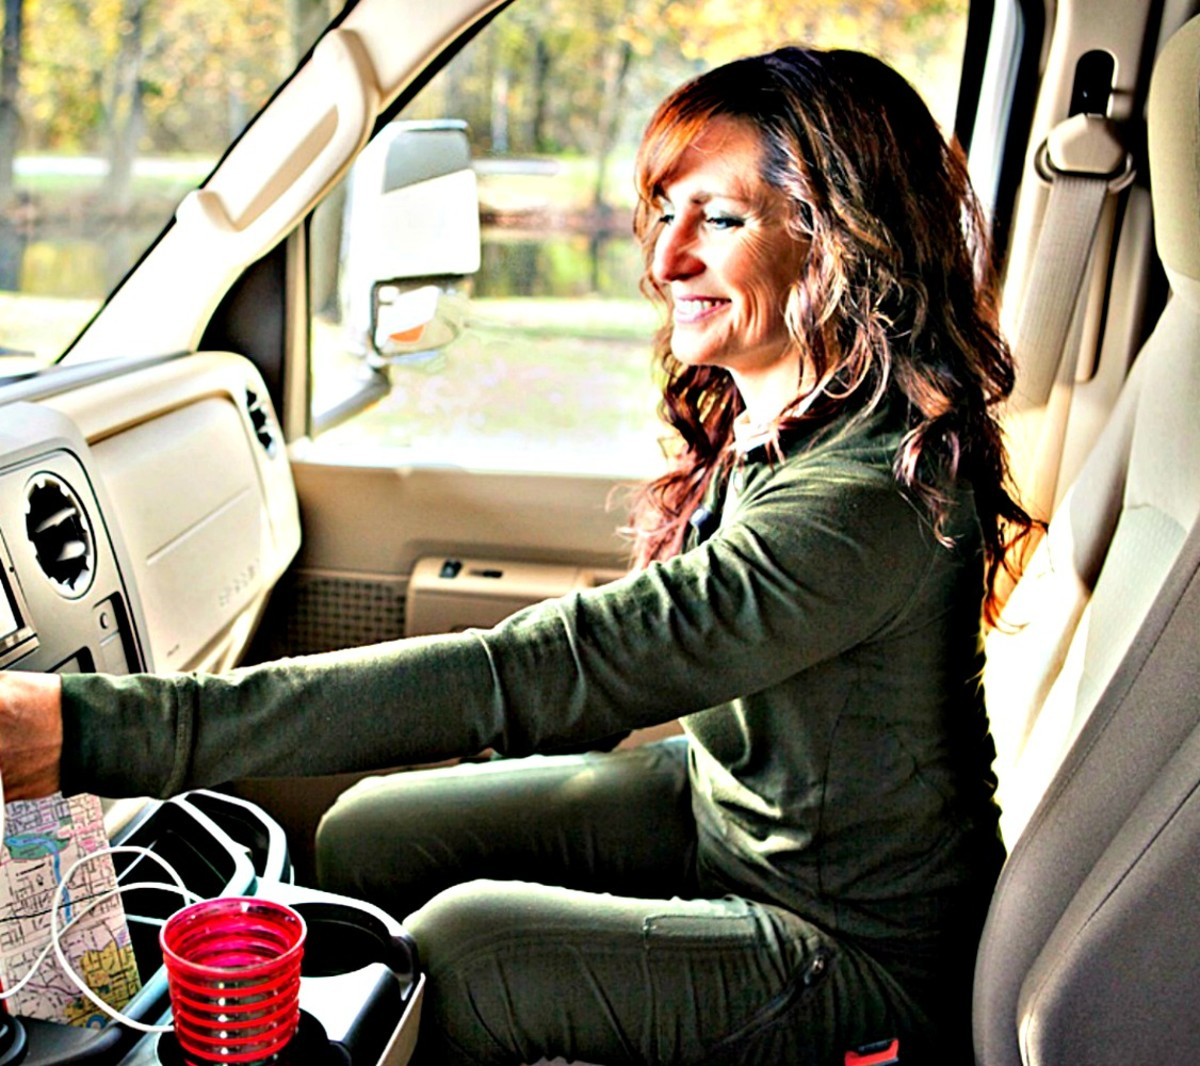 You'll have less stress and more enjoyment if you learn  how to drive your RV.